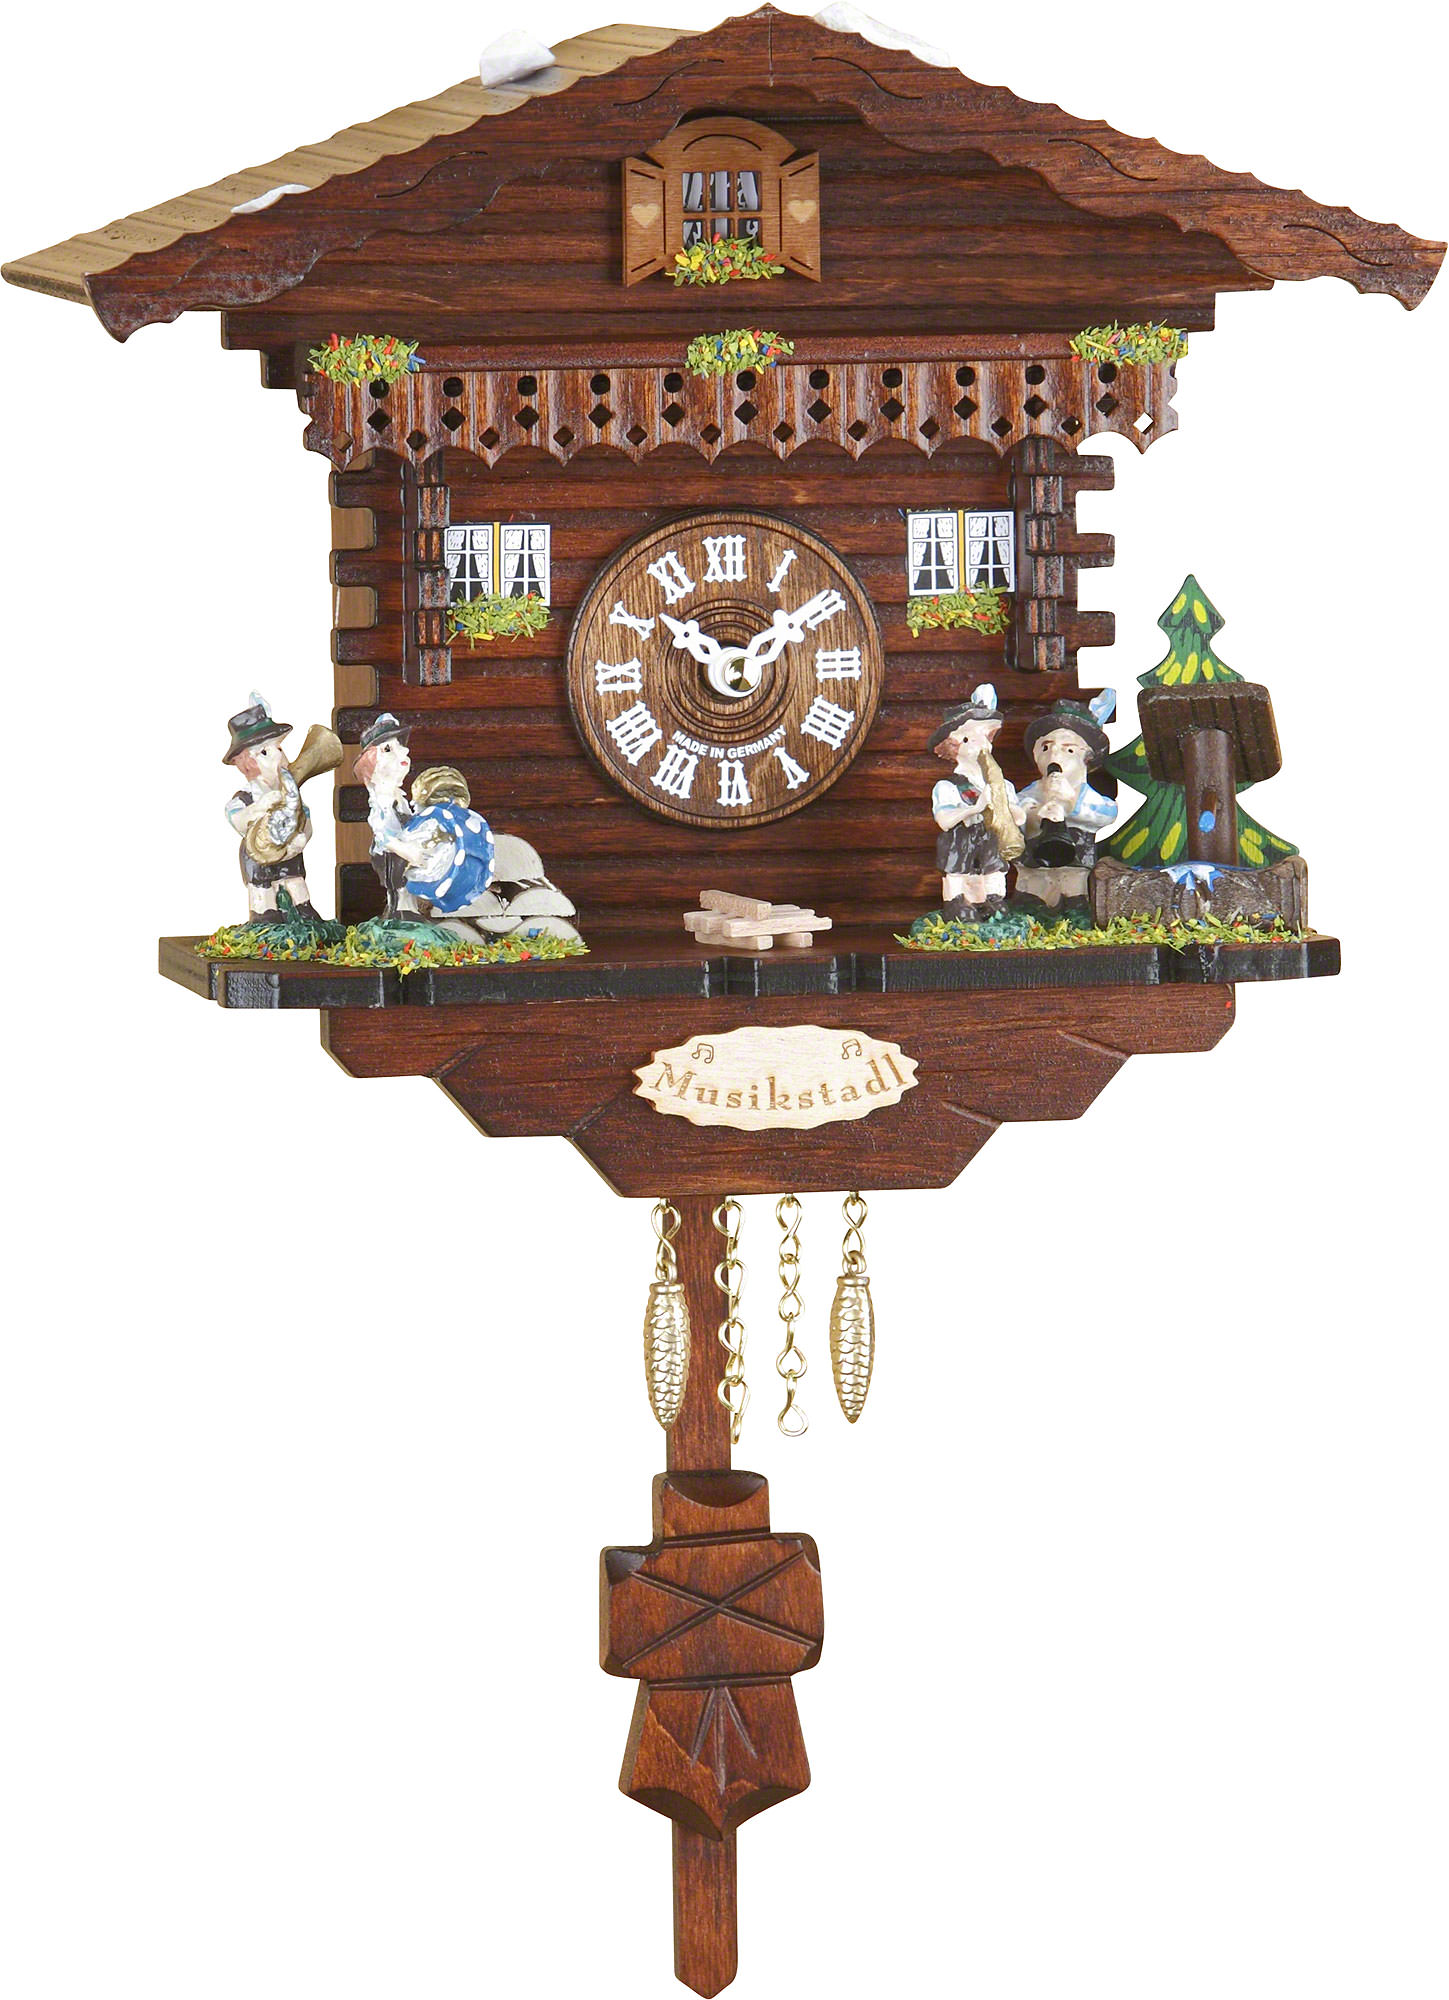 Cuckoo clock kuckulino quartz movement black forest pendulum clock style 17cm by trenkle uhren - Cuckoo clock pendulum ...